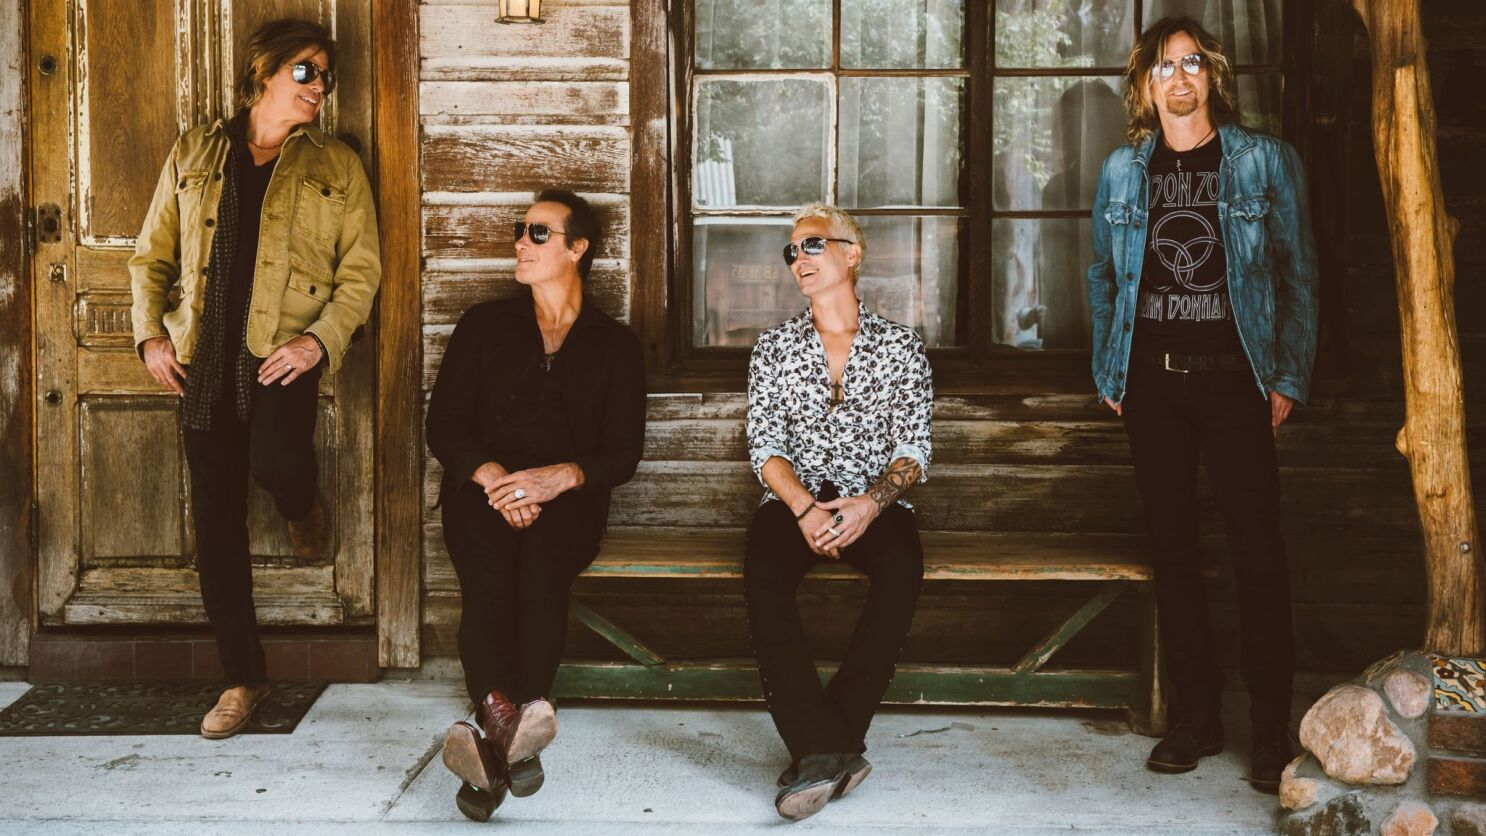 Stone Temple Pilots Overcome Deaths Of Scott Weiland And Chester Bennington With New Singer Tour And Album The San Diego Union Tribune